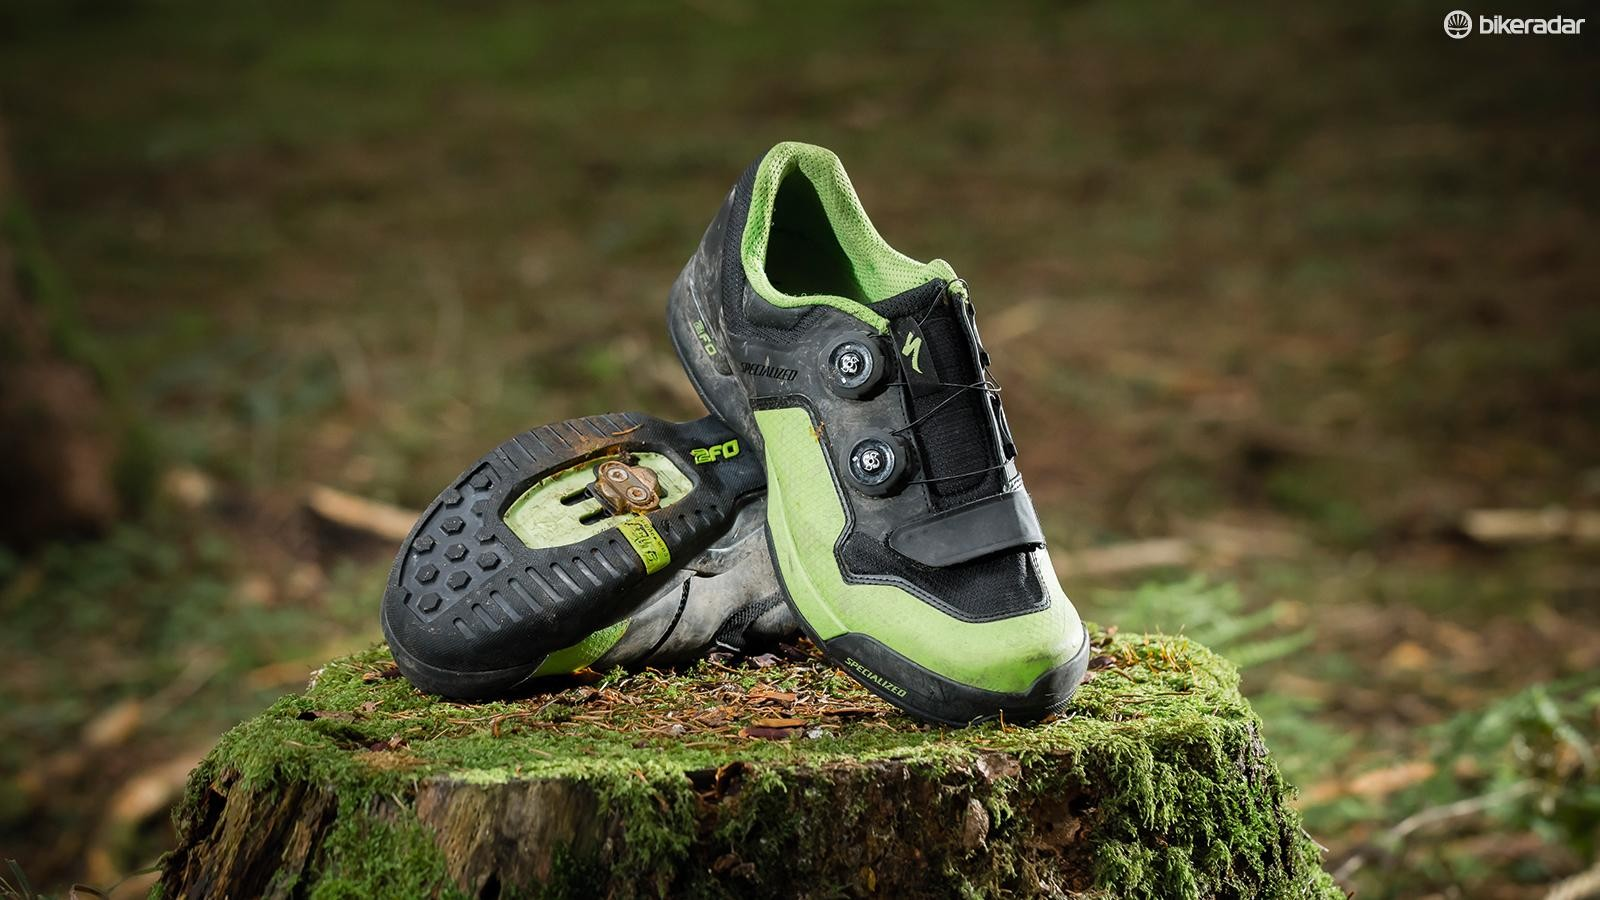 Specialized 2FO ClipLite shoes stay secure and comfy on long rides